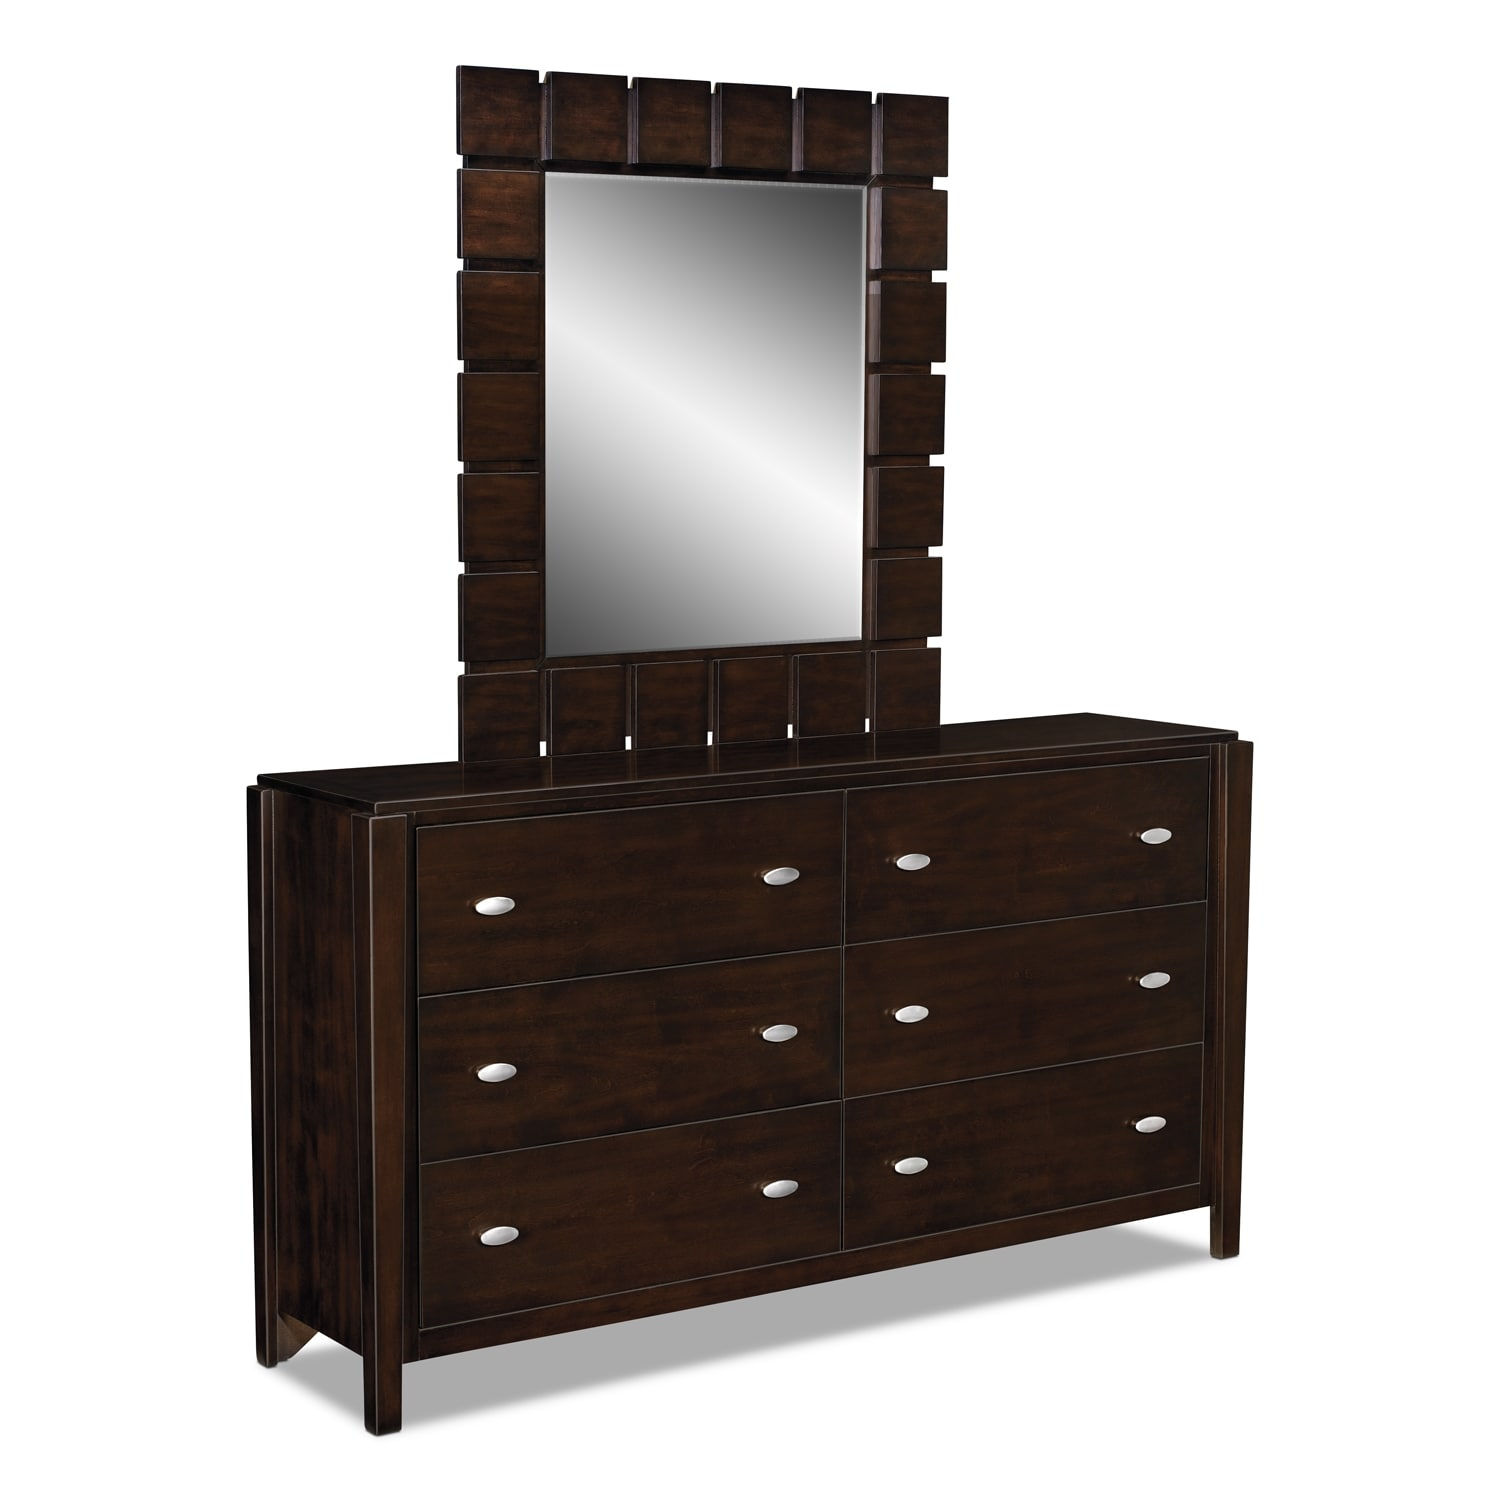 value city furniture dressers mosaic dresser and mirror brown value city furniture 17690